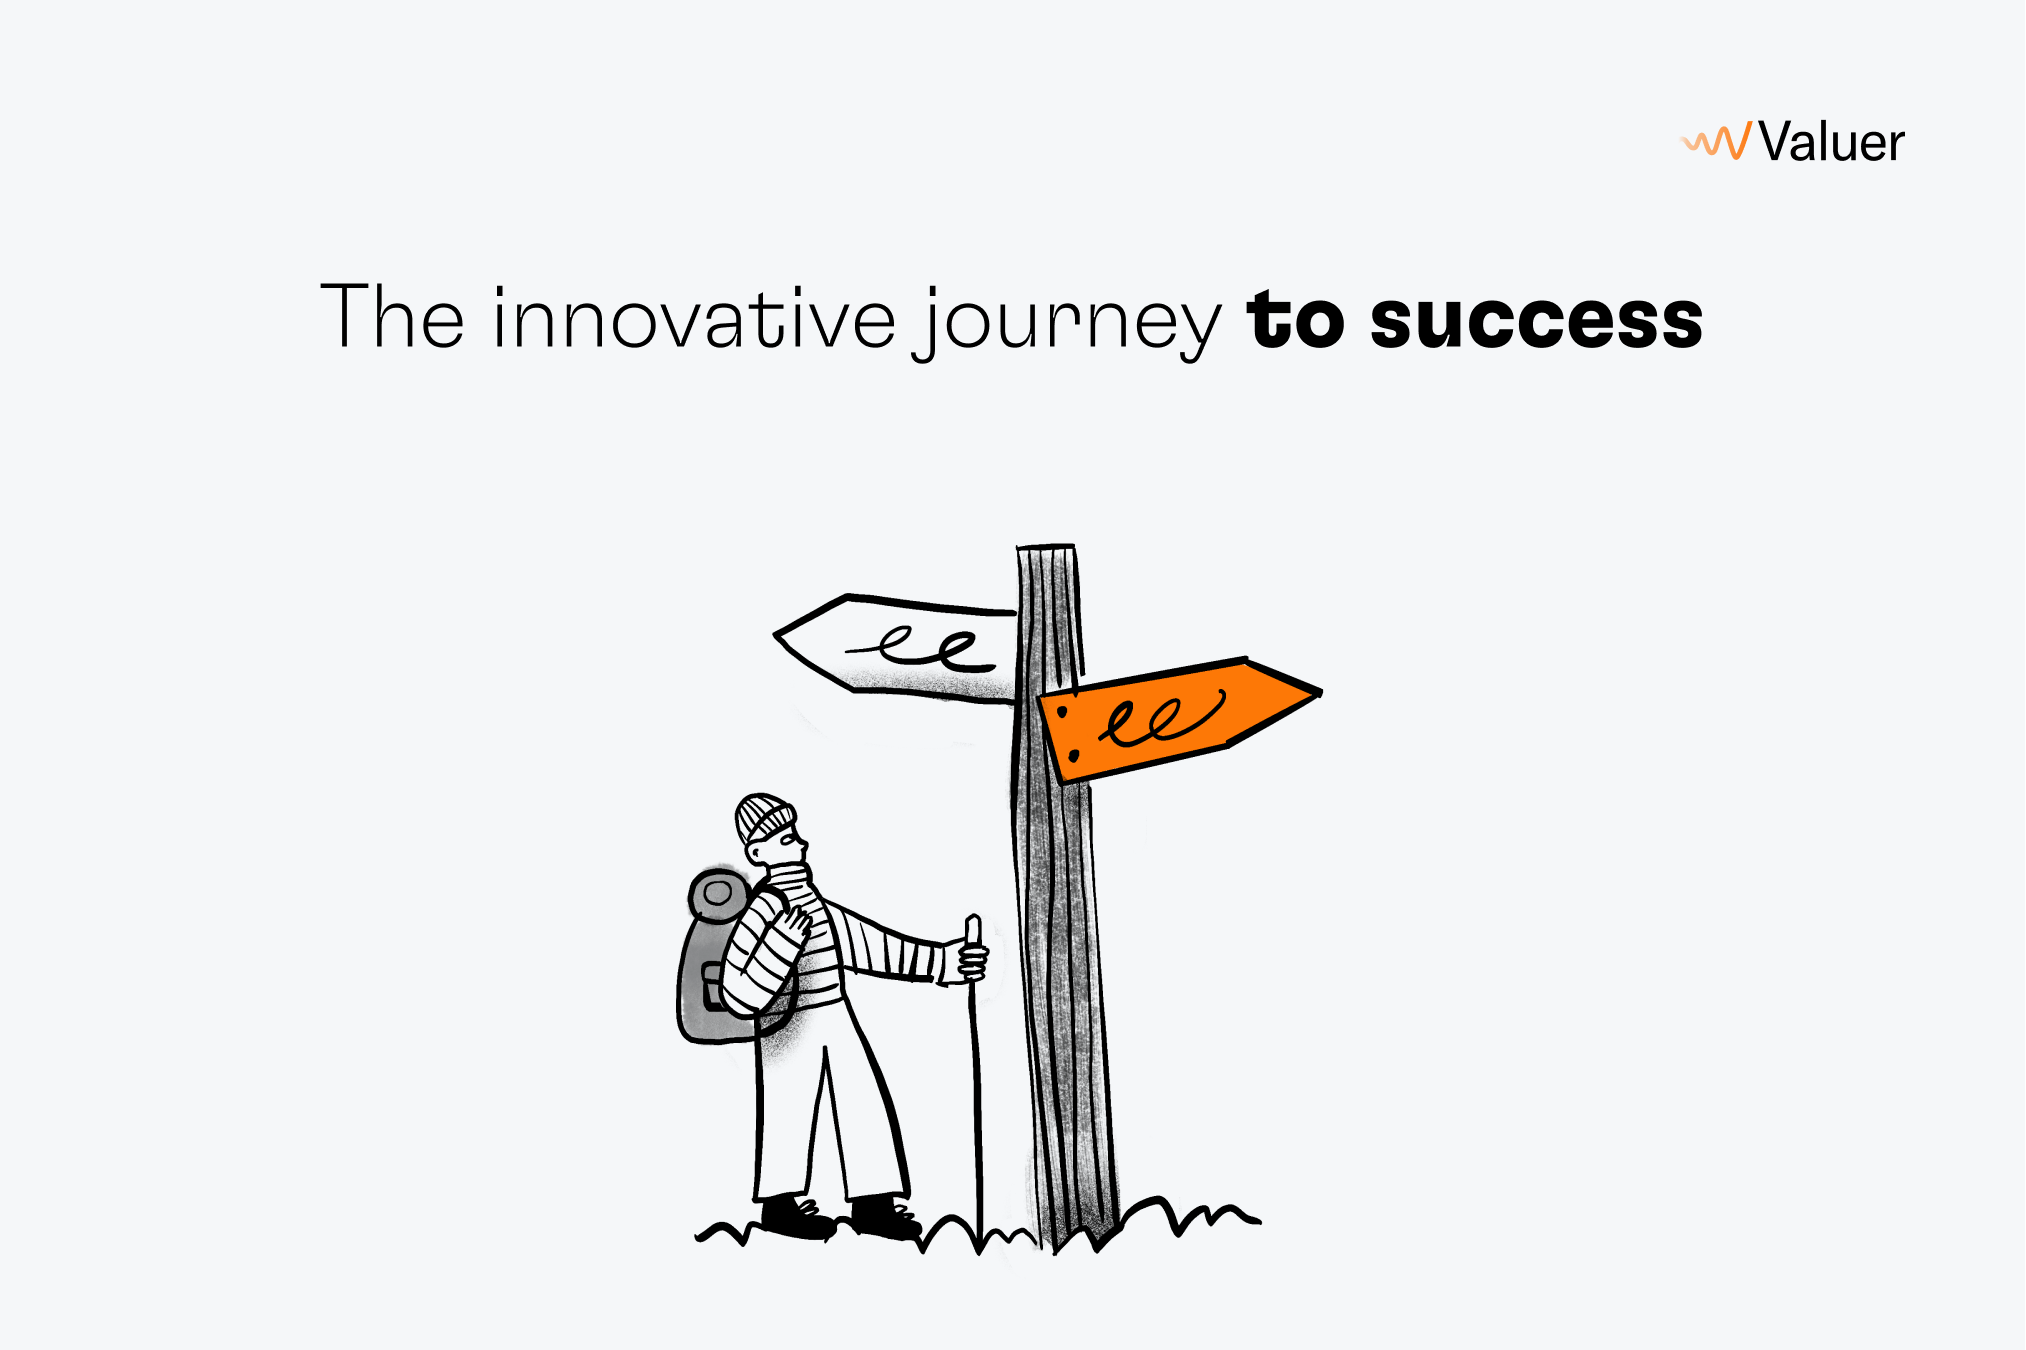 The innovative journey to success